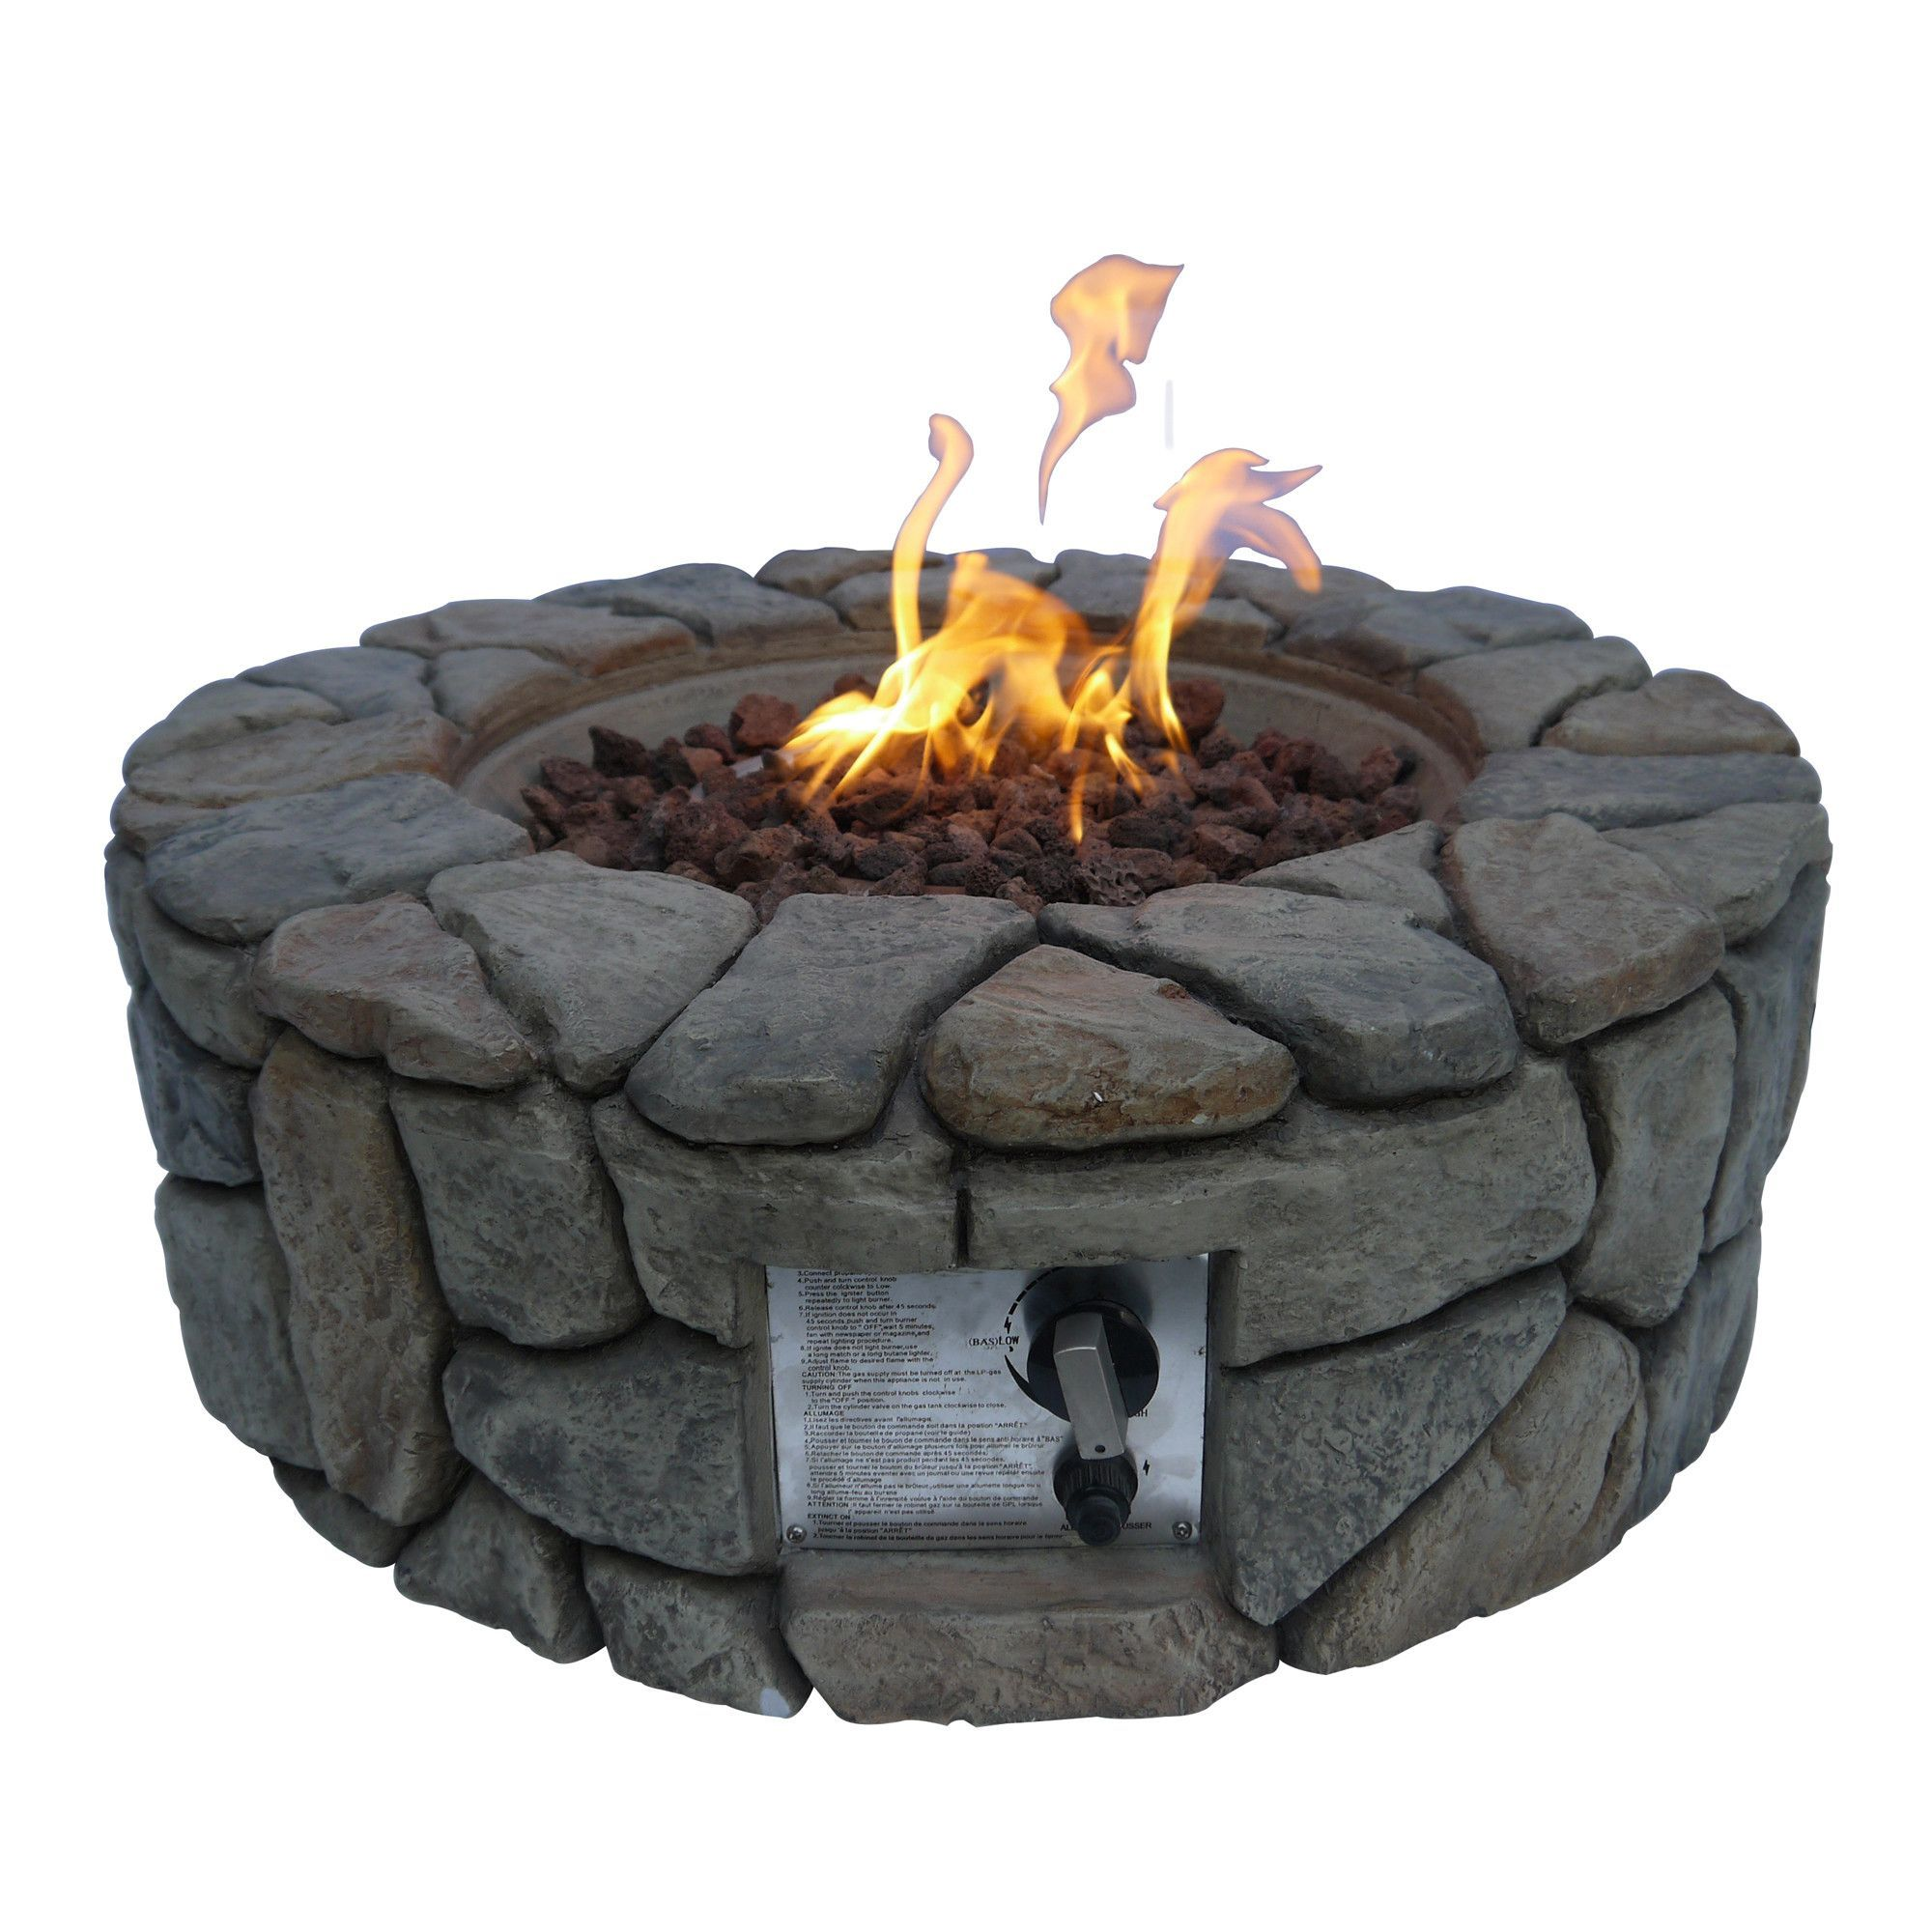 Stone gas fire pit fire pit pinterest gas fire pits gas fires